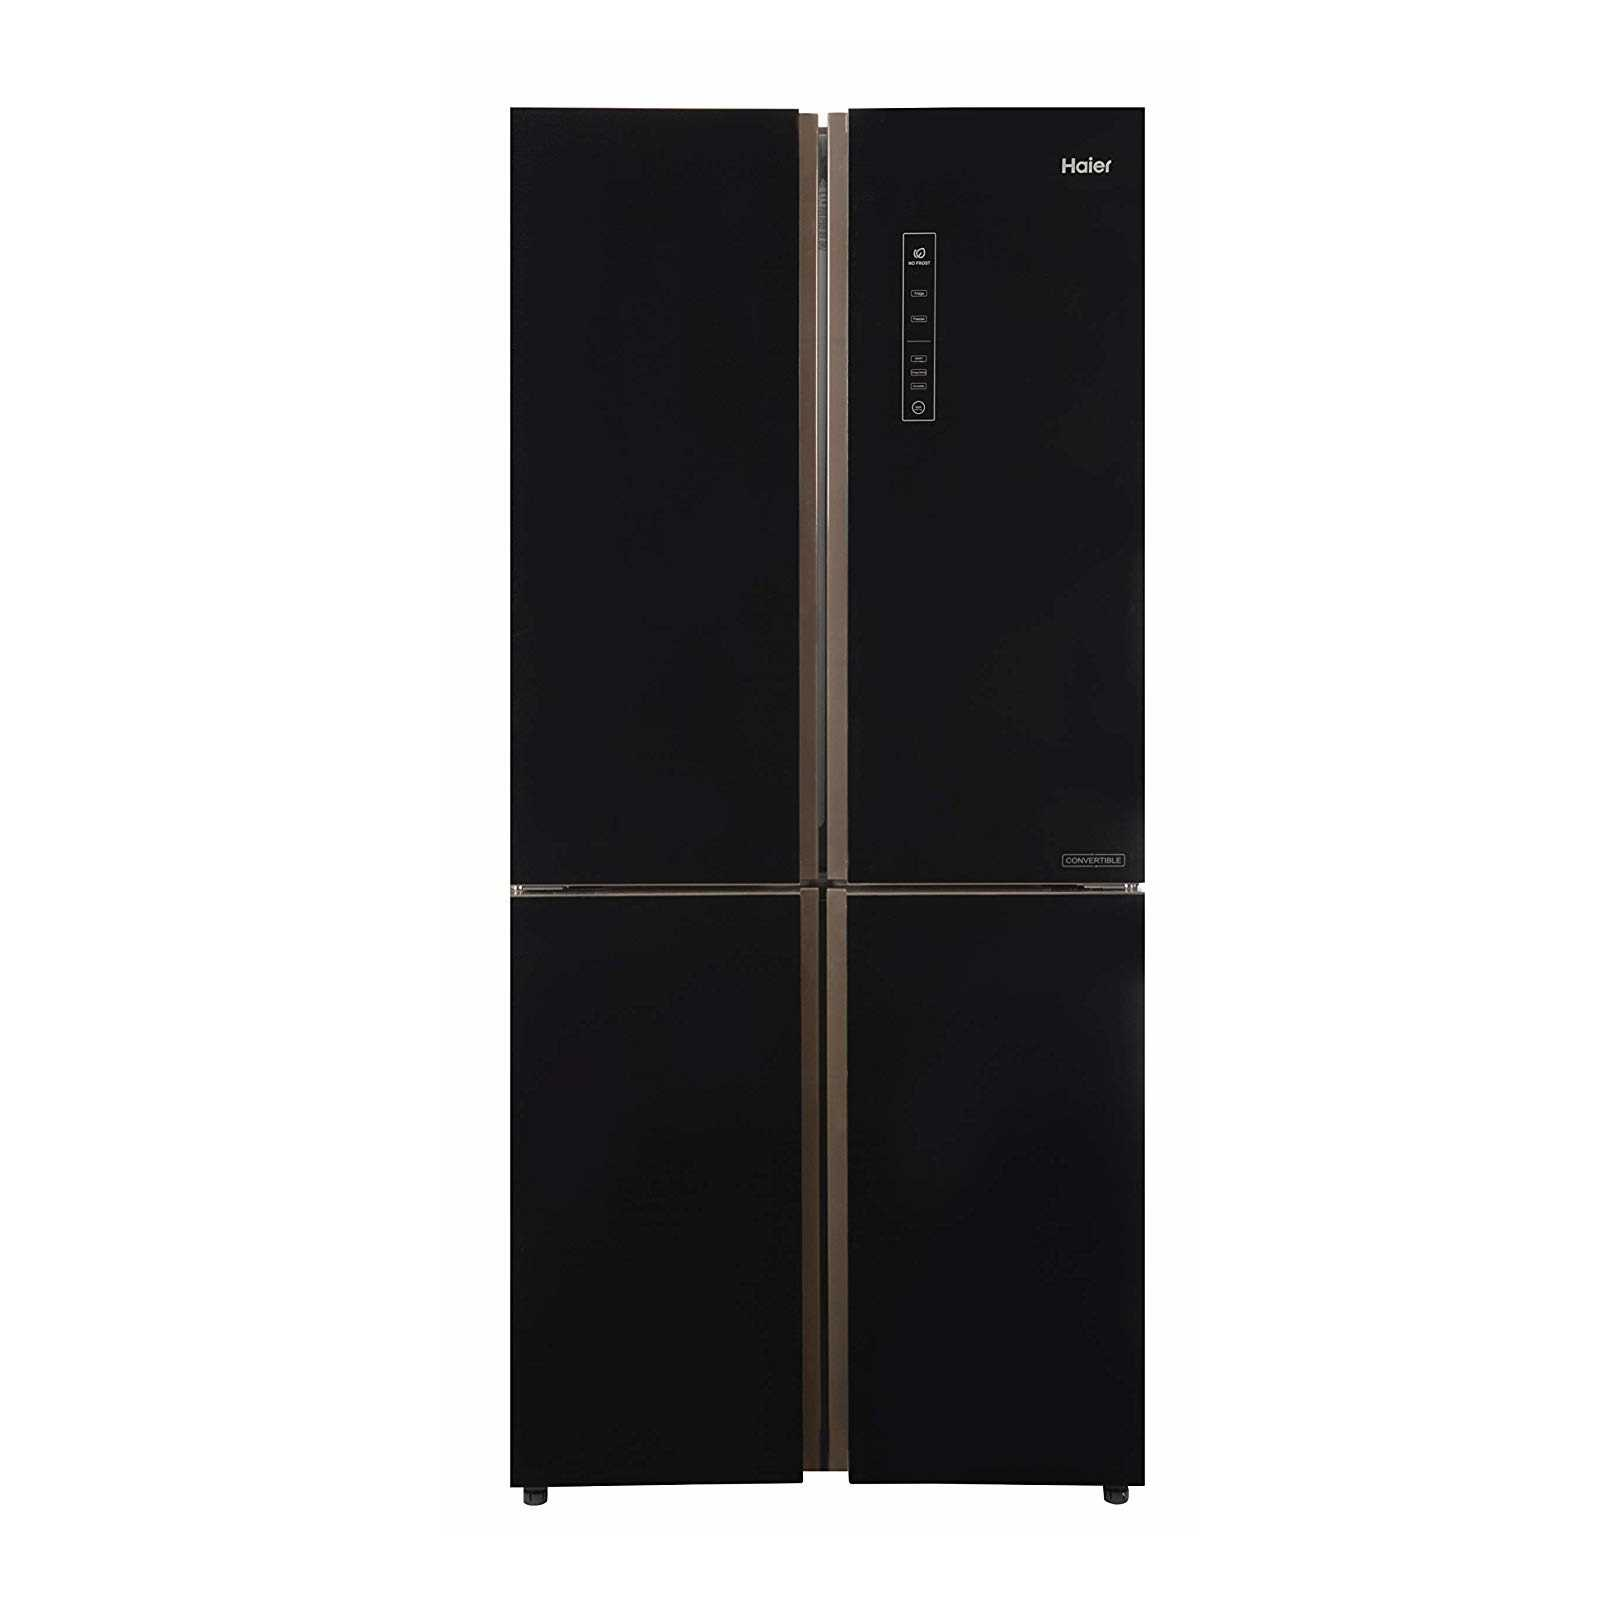 Haier HRB 550 531 Litre Inverter Frost Free Side by Side Refrigerator